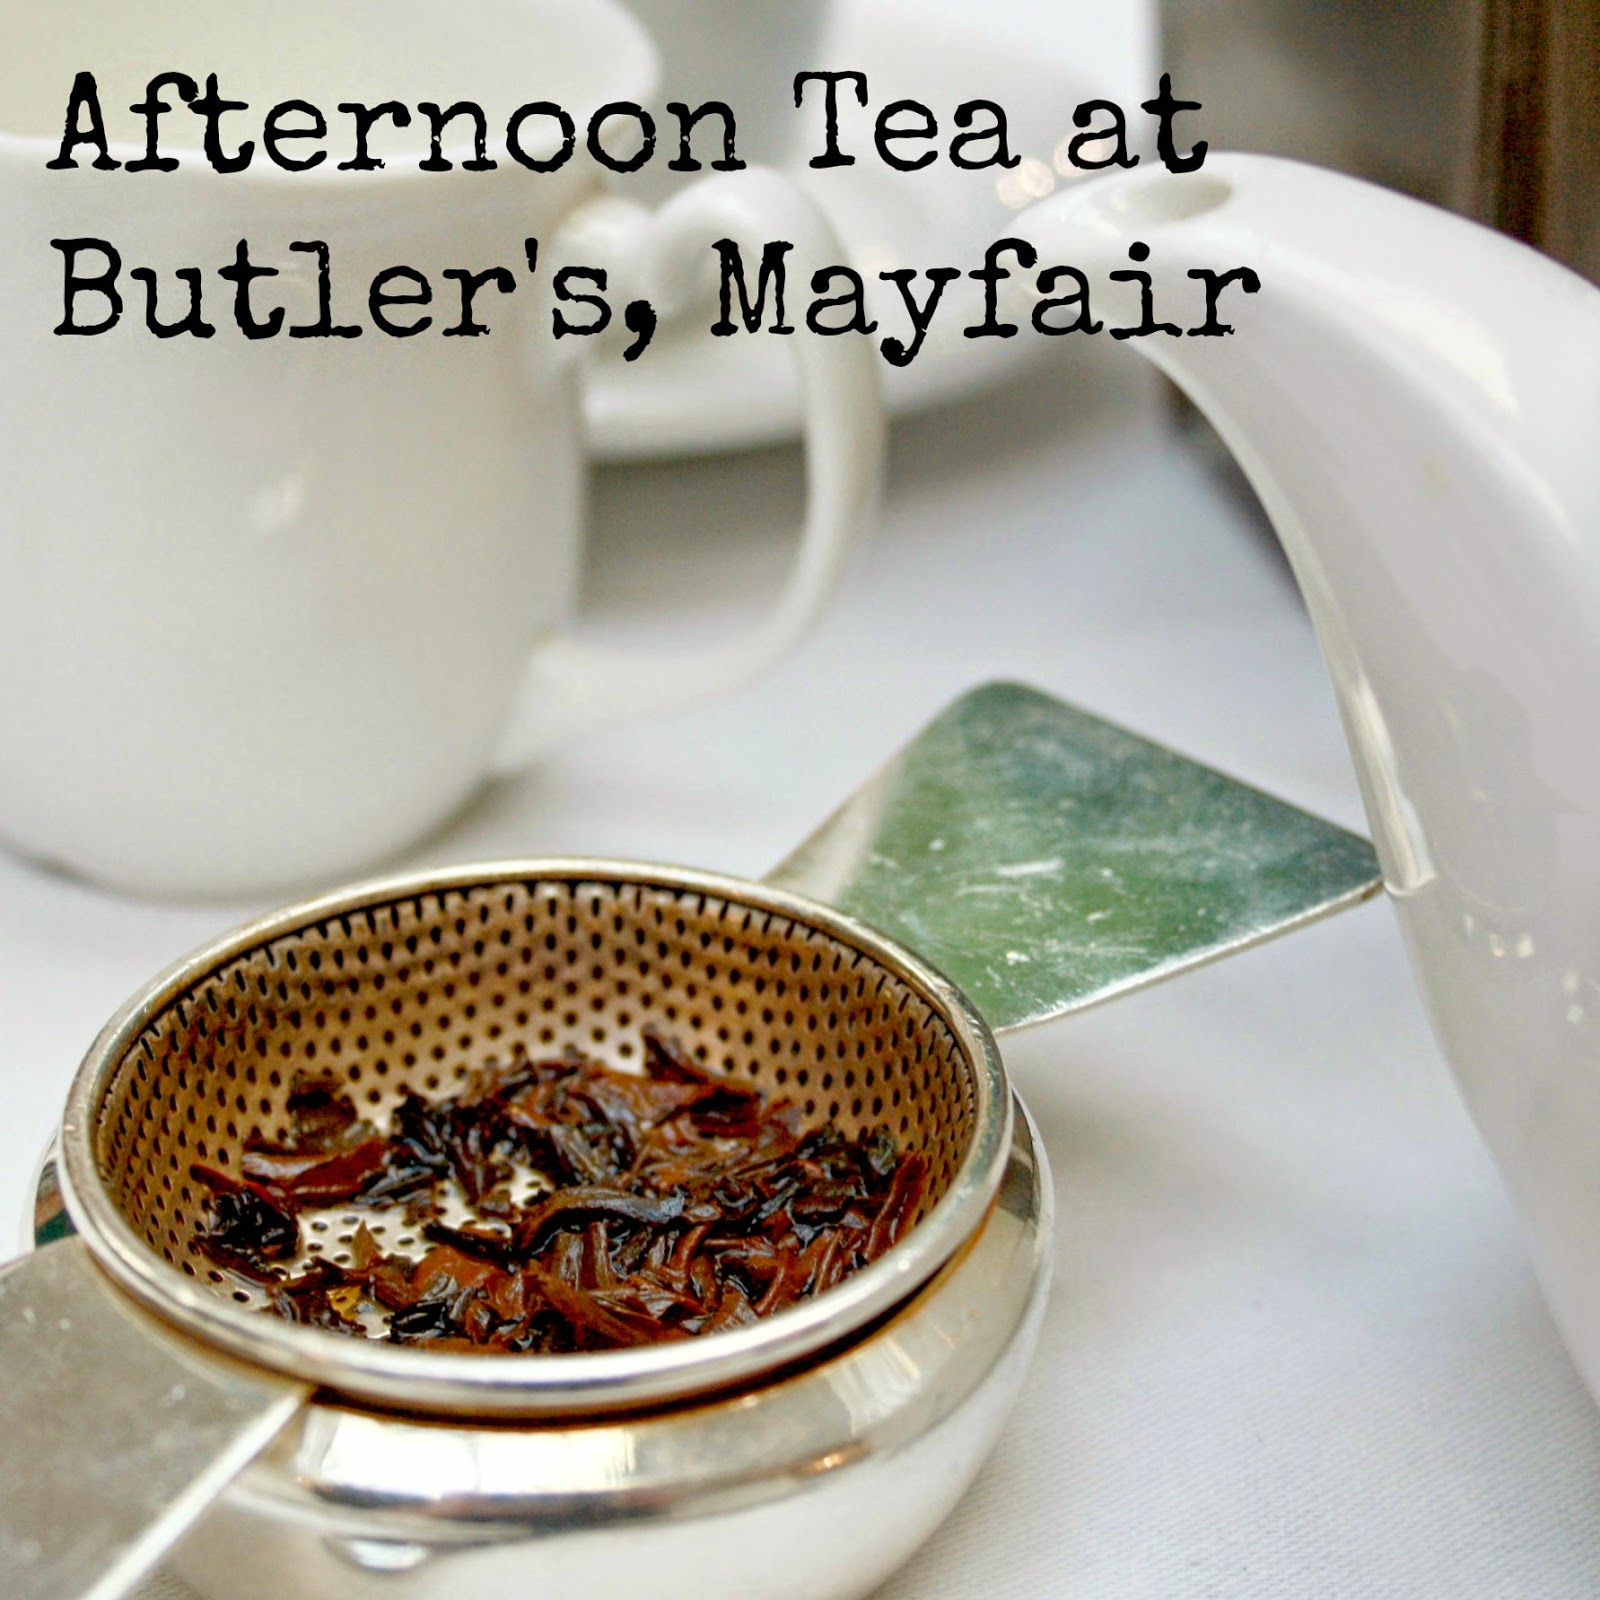 A review of afternoon tea at Butler's, The Chesterfield in Mayfair for my mum's 50th birthday - finger sandwiches, pastries and cakes, scones with clotted cream and jam and a huge selection of black, green and white teas including my favourite - lapsang souchong.